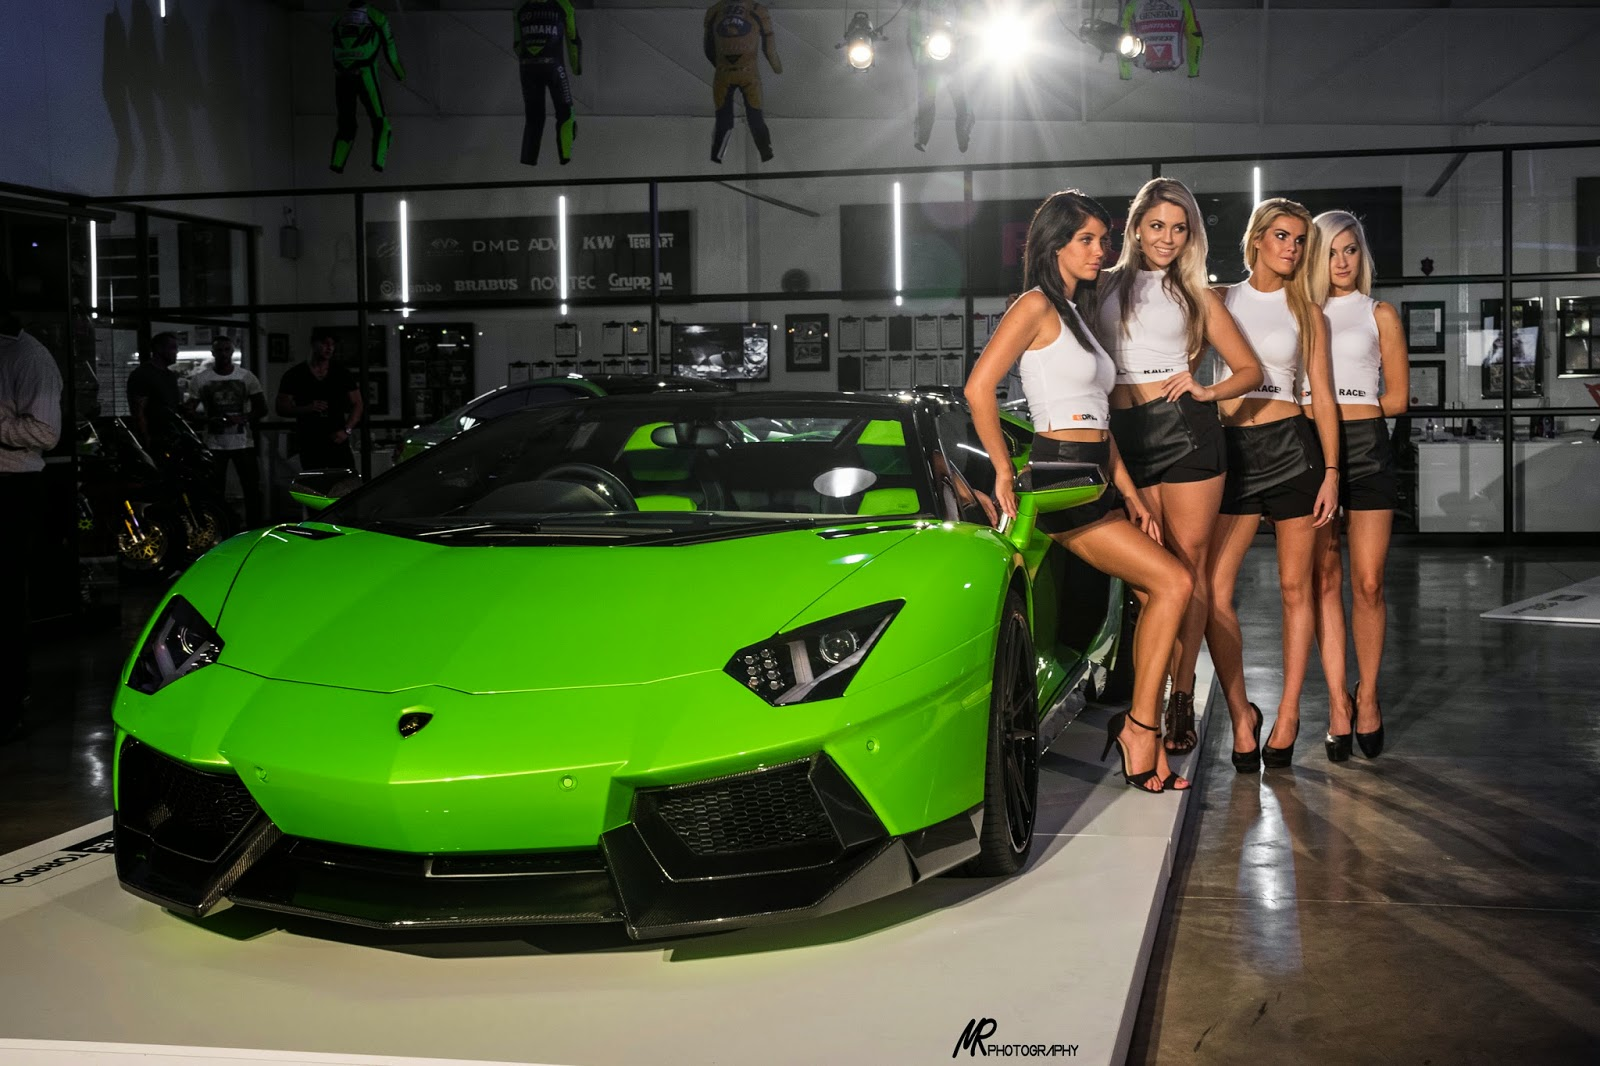 Top 10 Most Expensive Cars >> Novitec Torado Lamborghini Aventador Roadster Launch At Race! South Africa